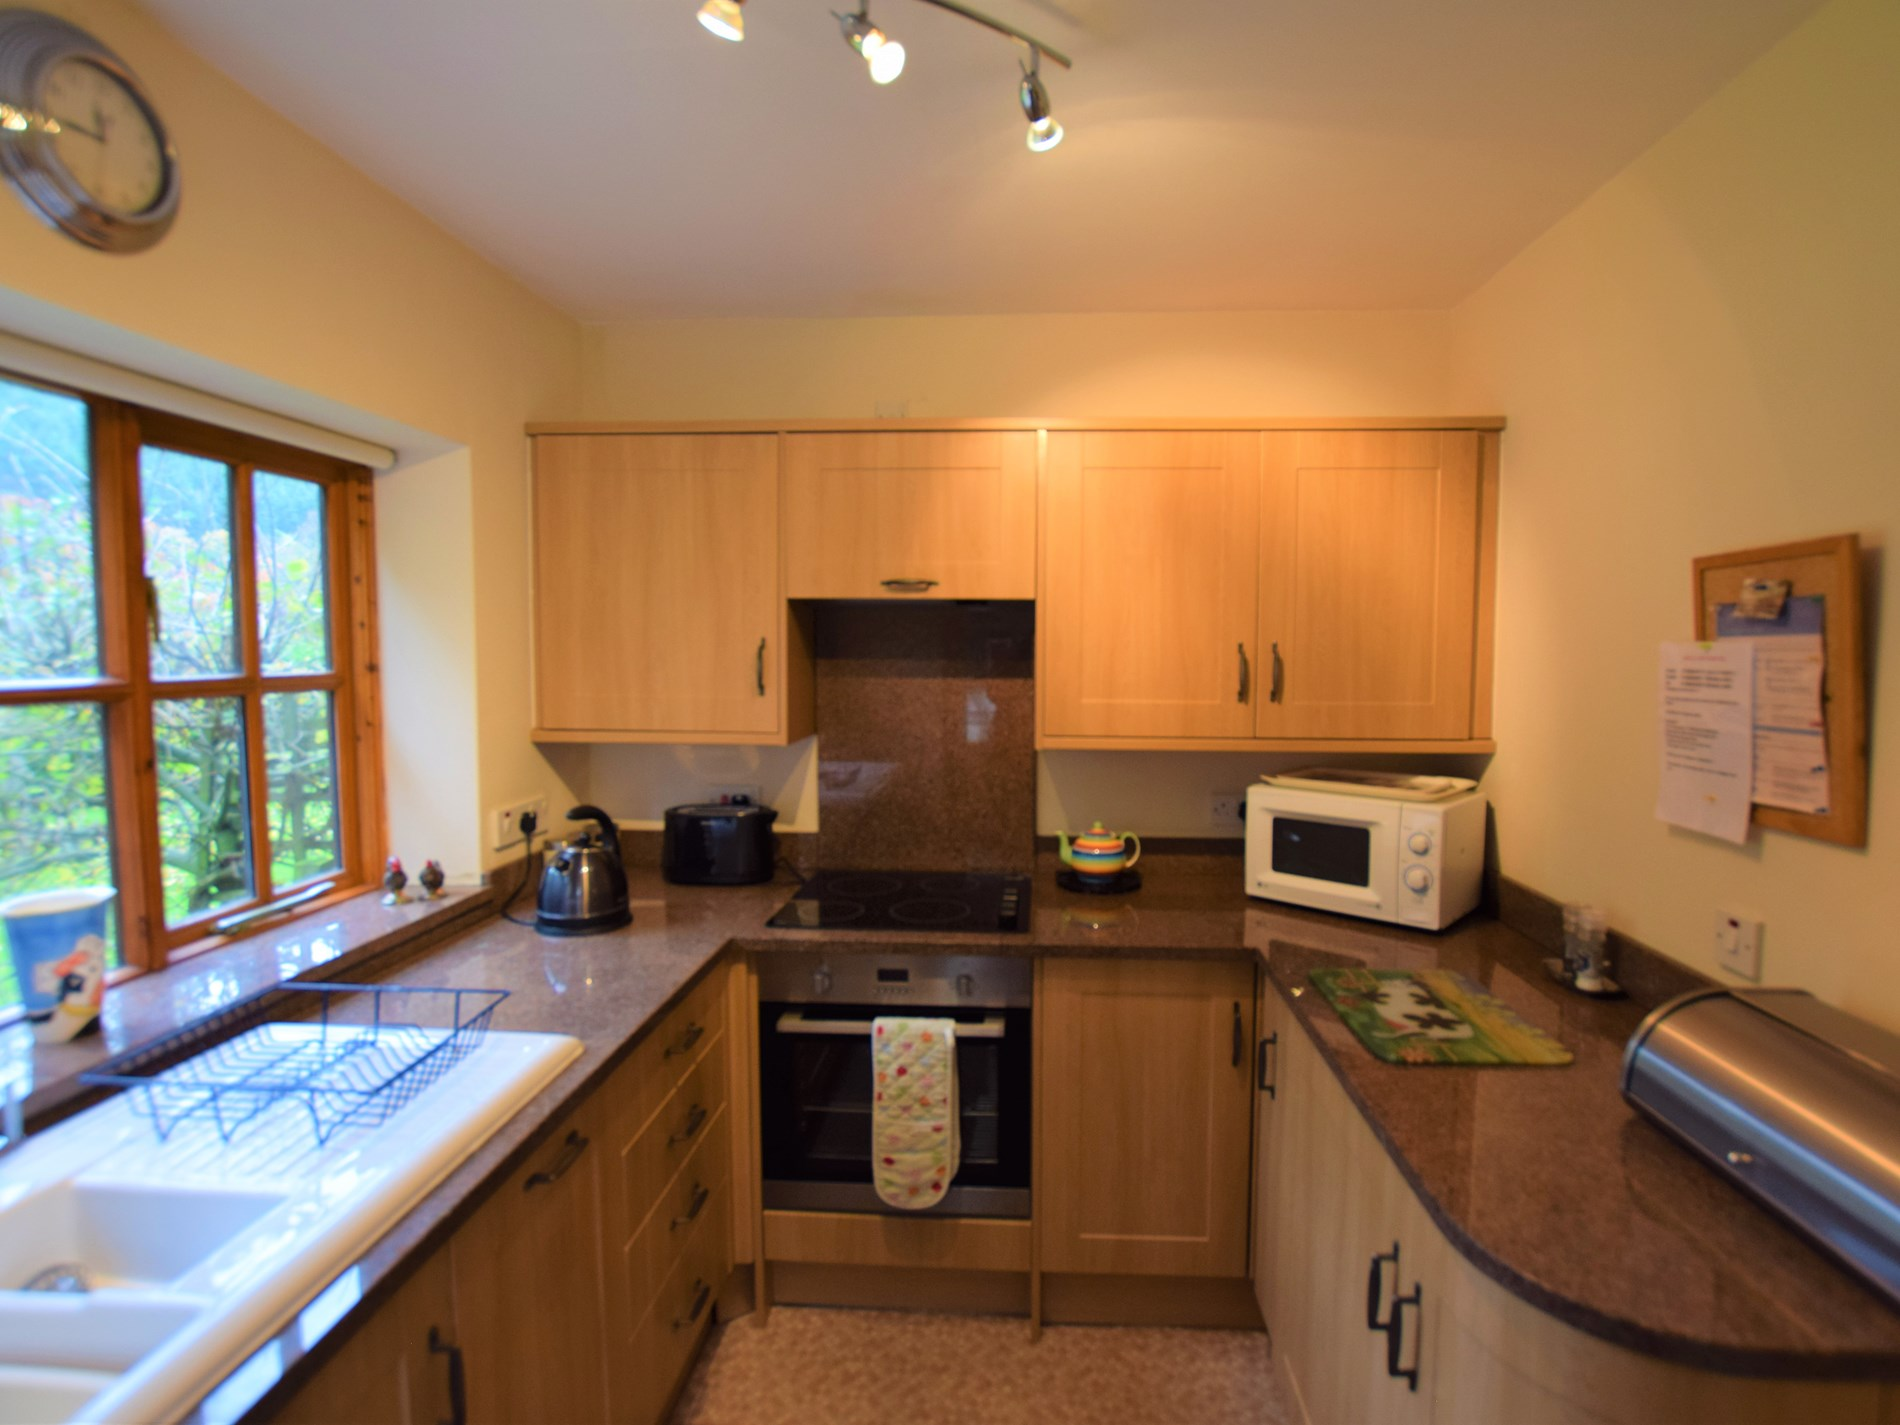 1 Bedroom Cottage in Shropshire, Heart of England